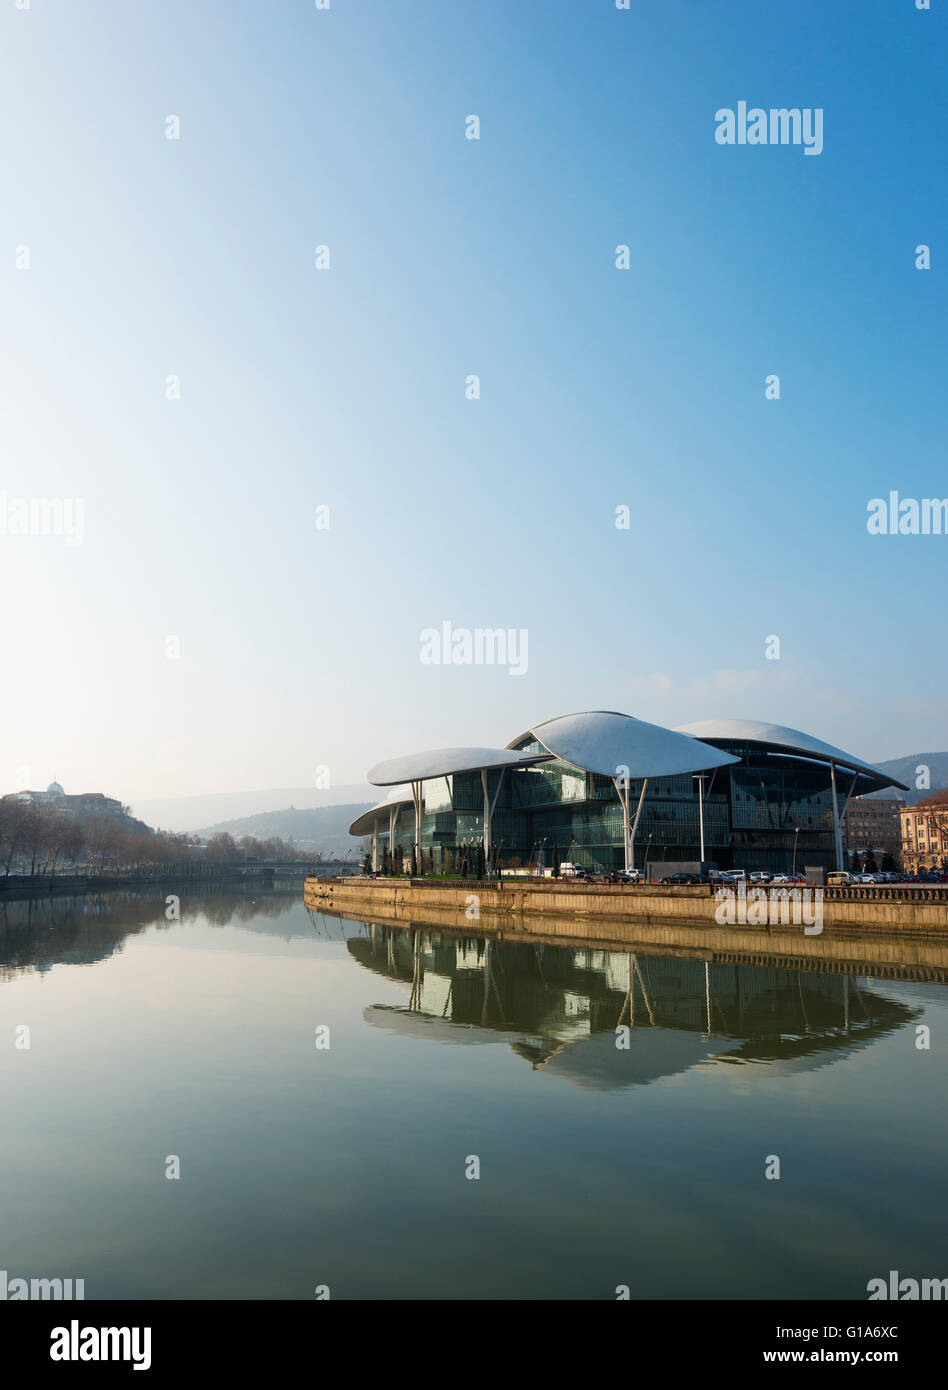 Eurasia, Caucasus region, Georgia, Tbilisi, Public Service Hall, House of Justice on Mtkvari river - Stock Image